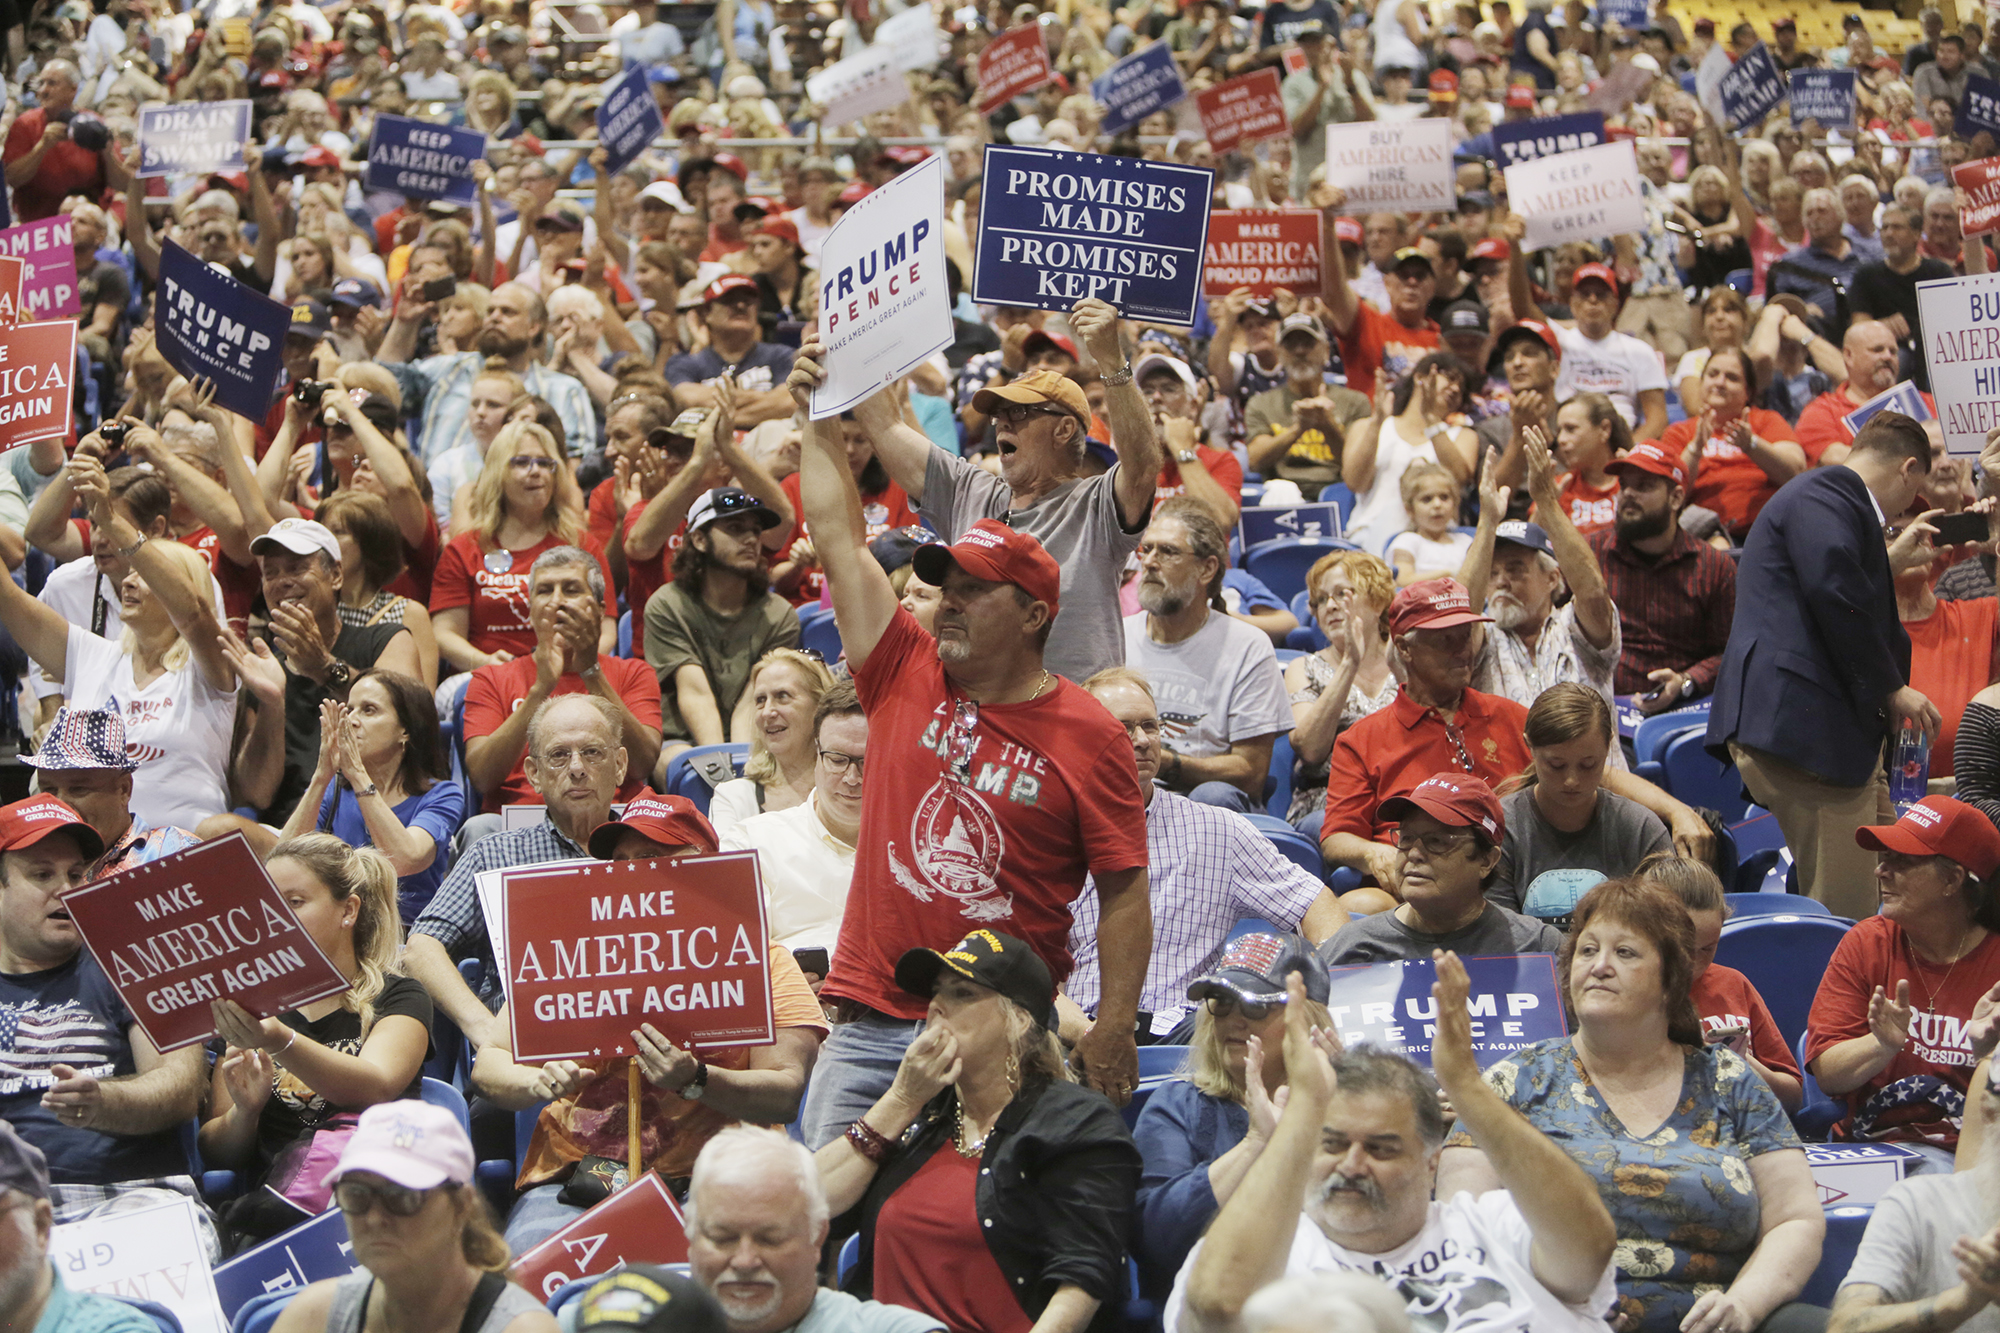 Supporters of President Donald Trump fill the stands during a rally at the Florida State Fairgrounds in Tampa on Tuesday